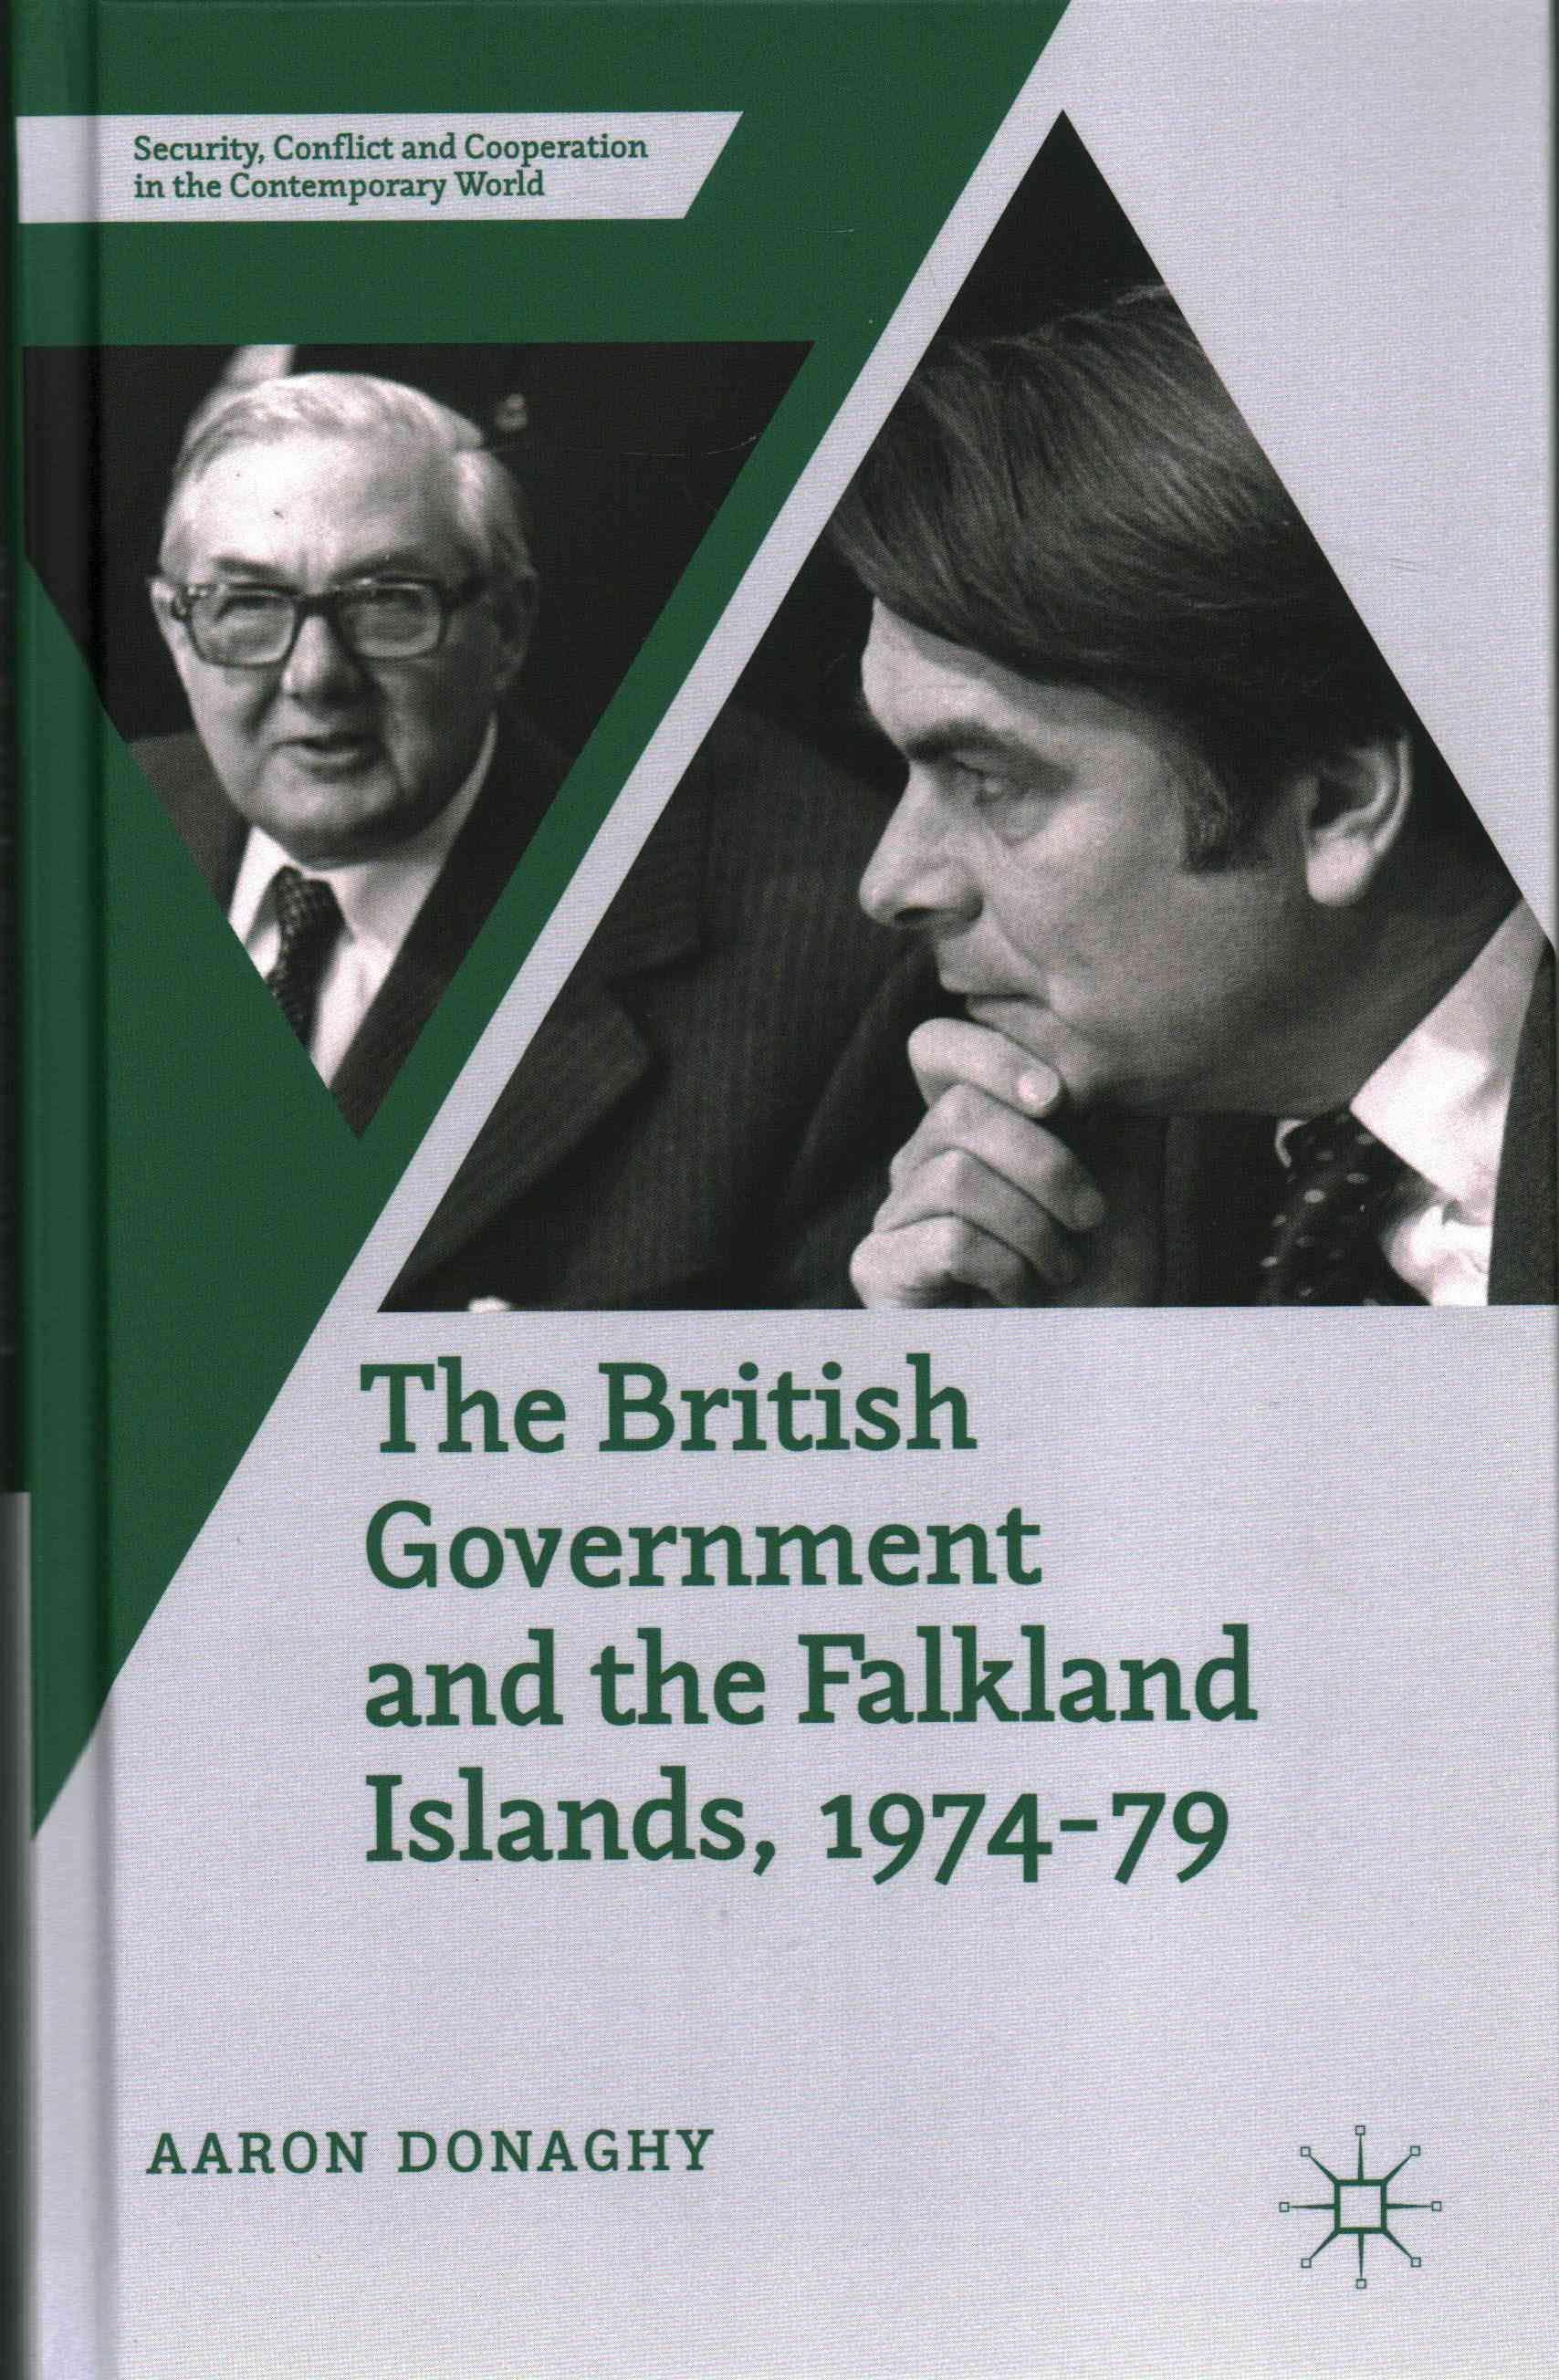 The British Government and the Falkland Islands, 1974-79